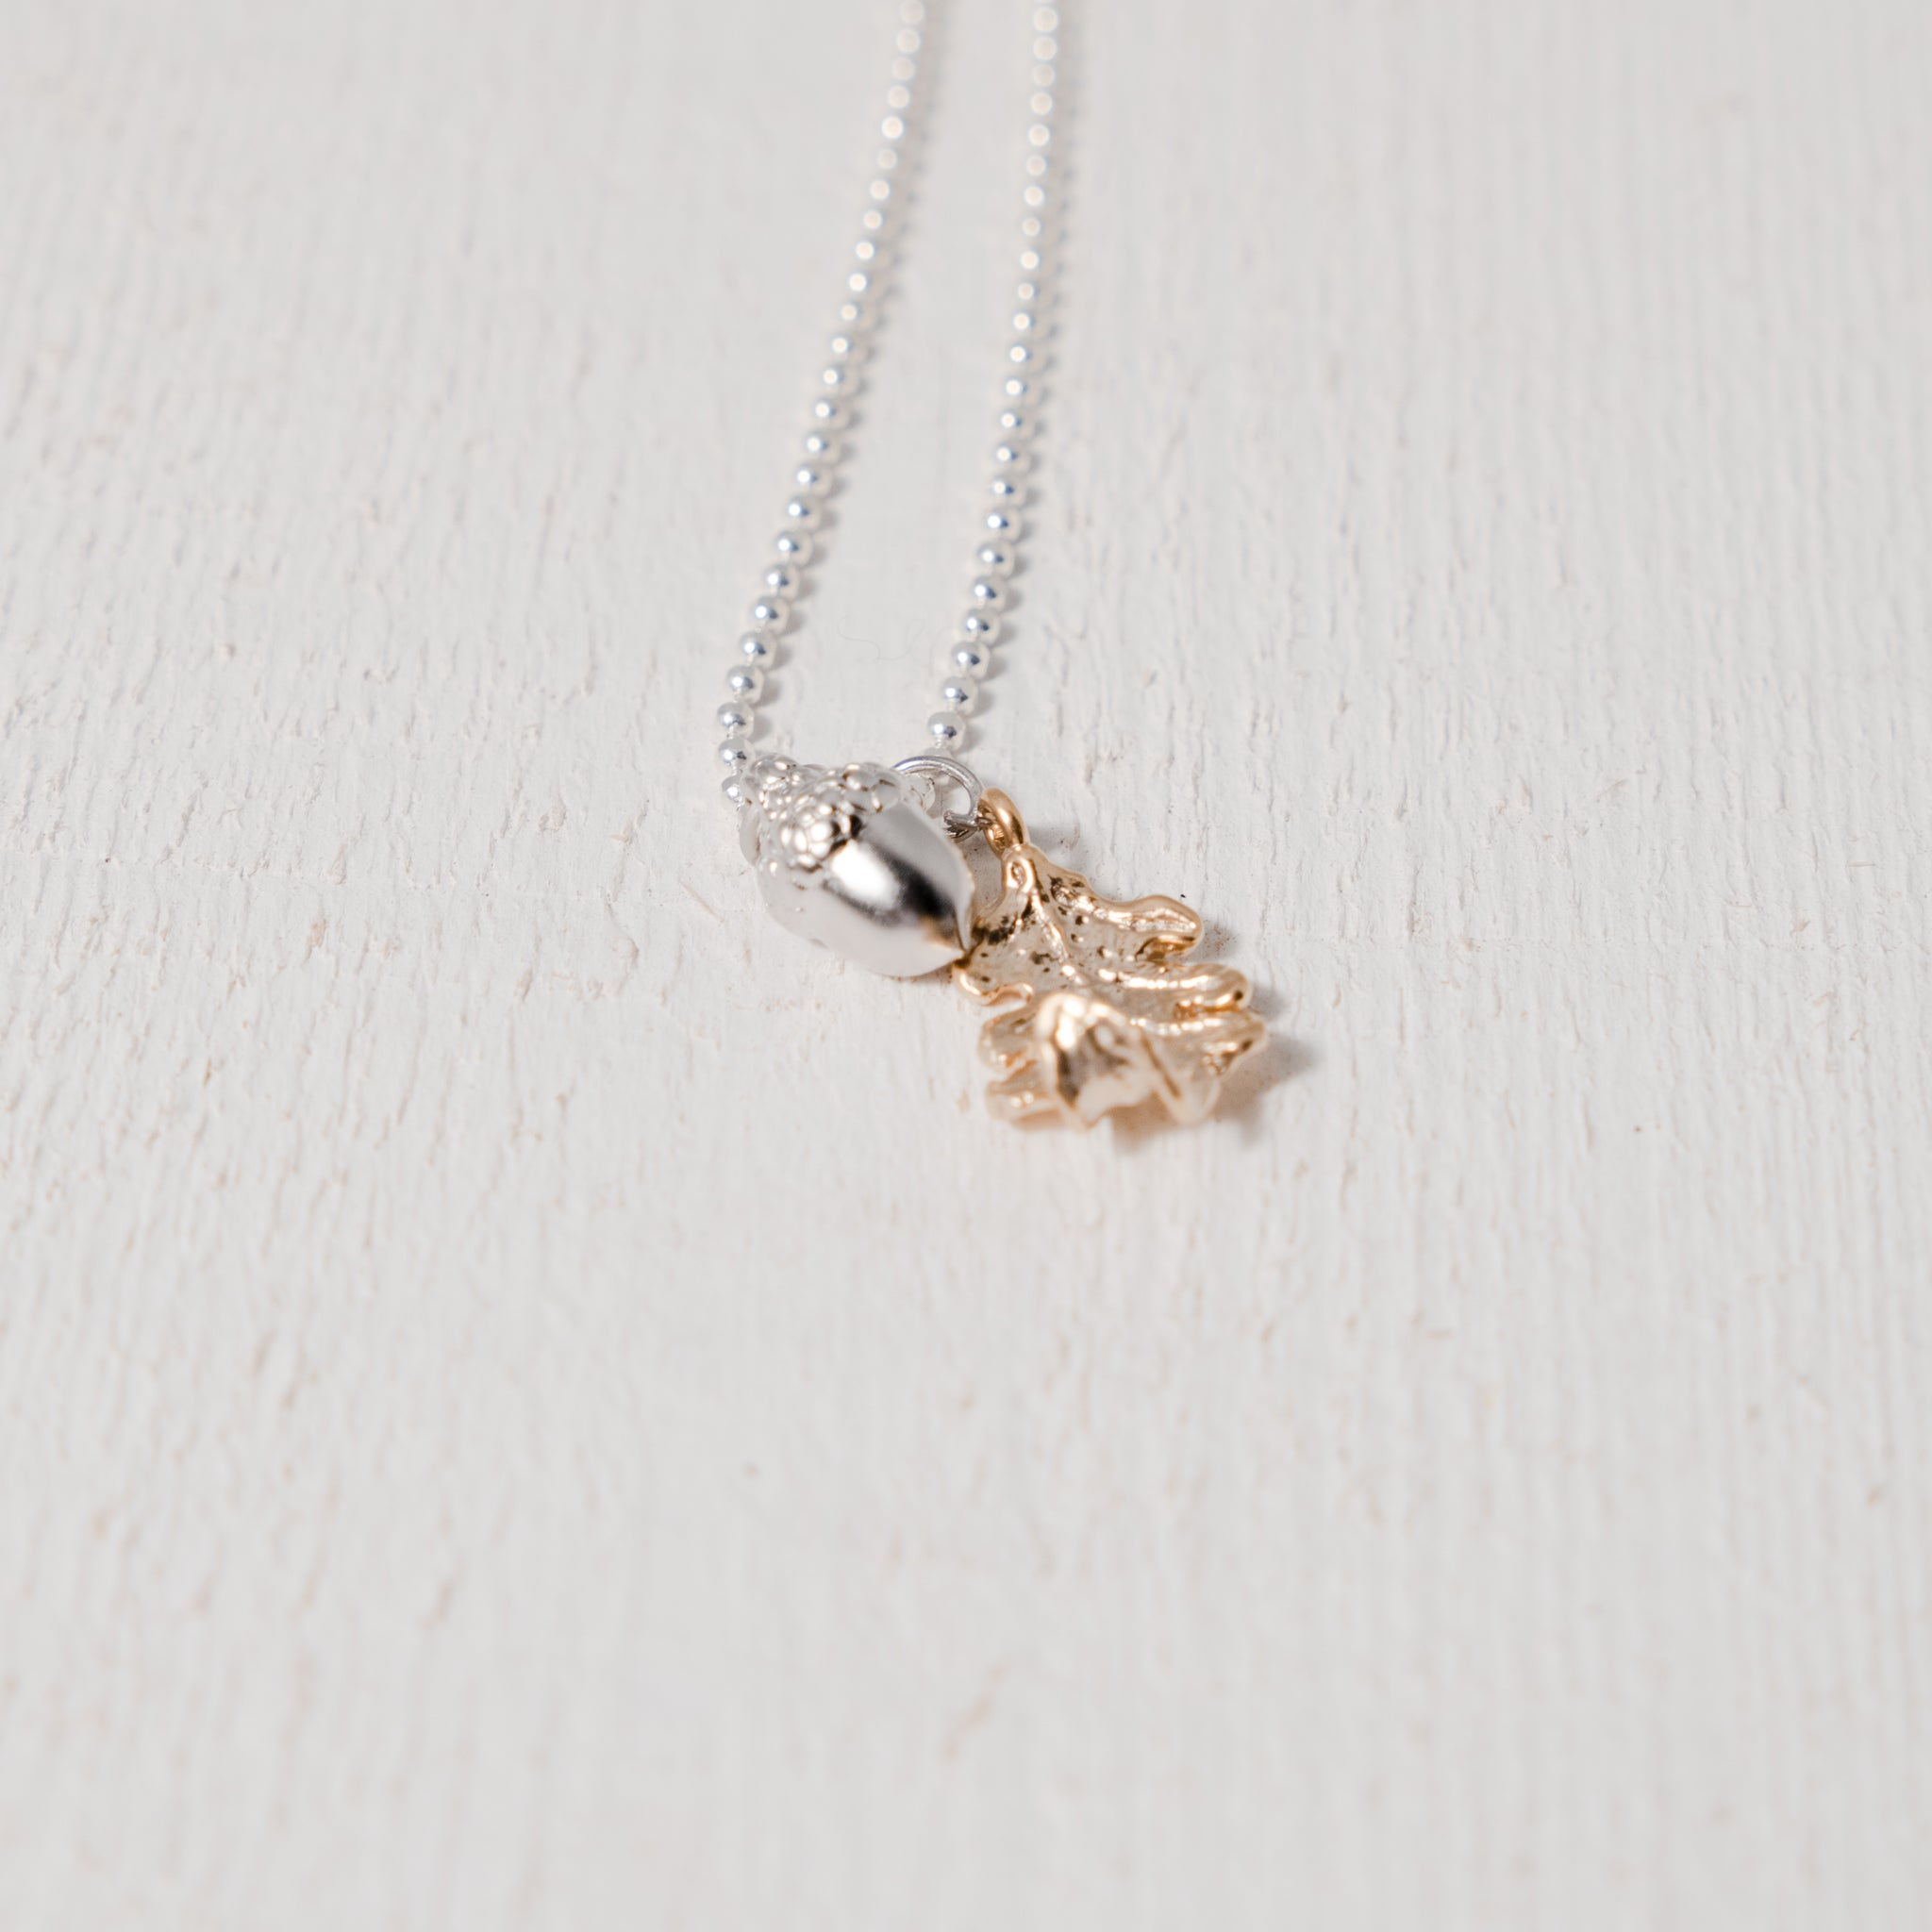 Silver Plated Acorn and Oak Leaf Necklace